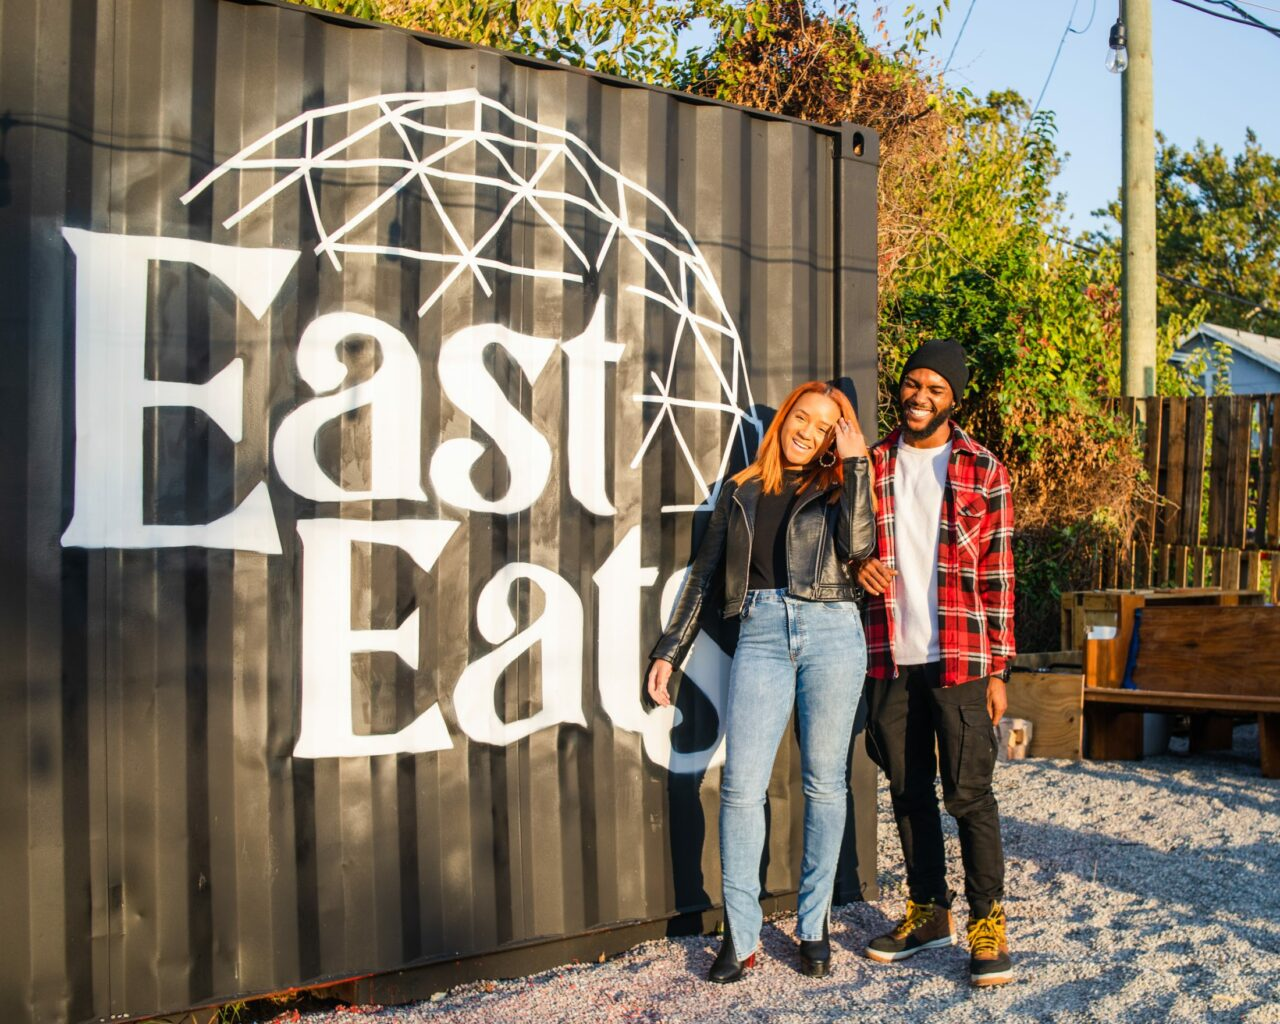 Opening weekend at East Eats